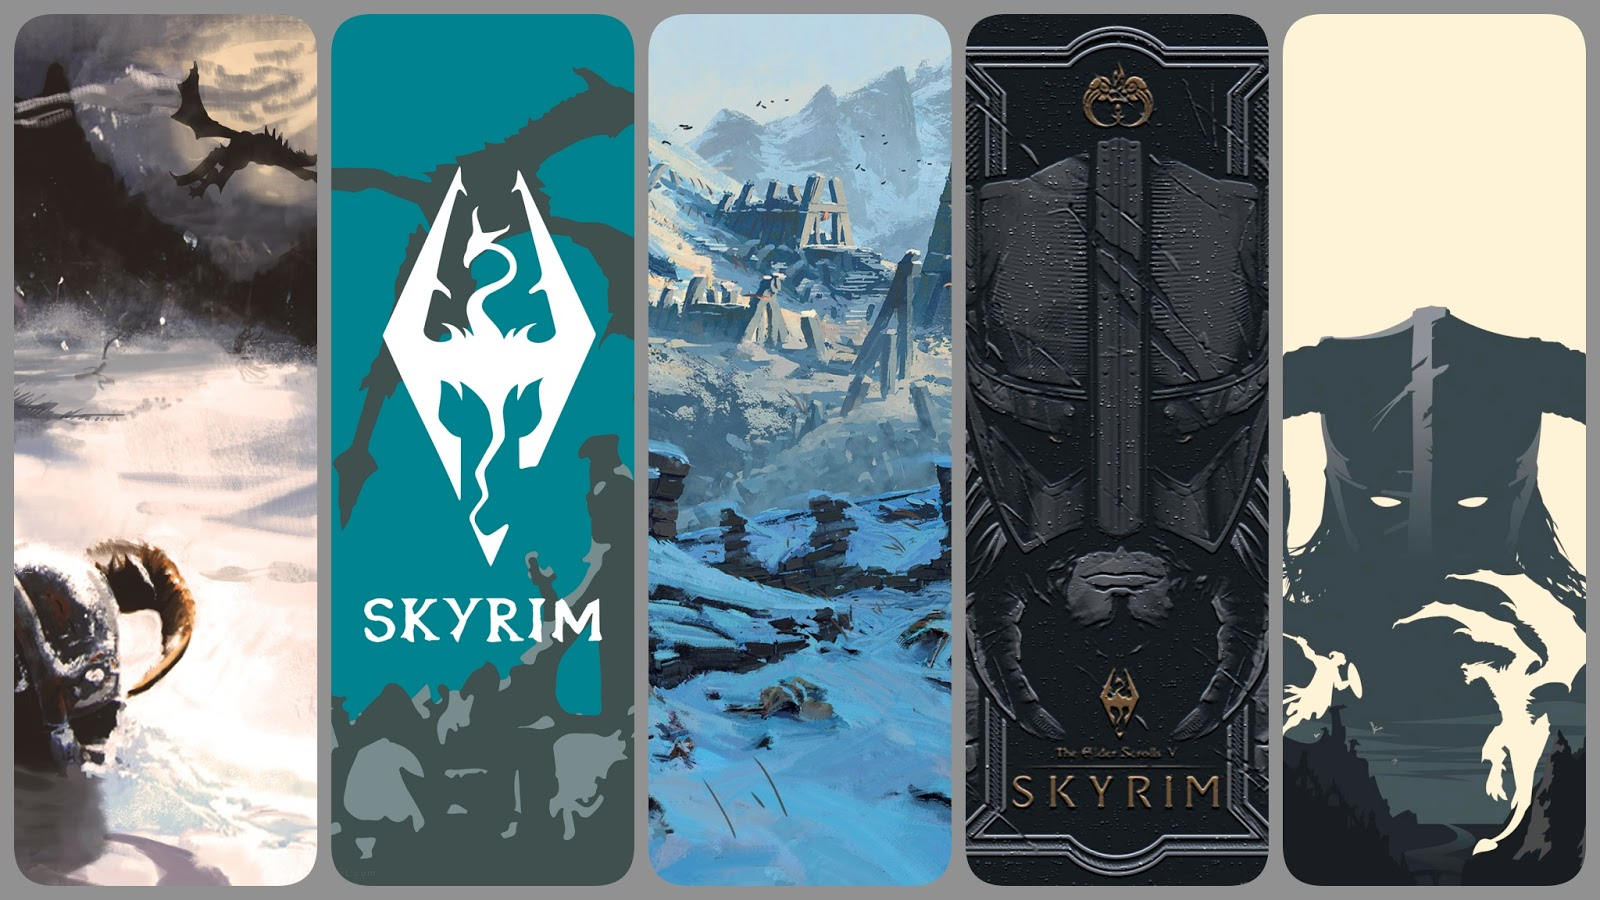 Skyrim phone wallpaper collection